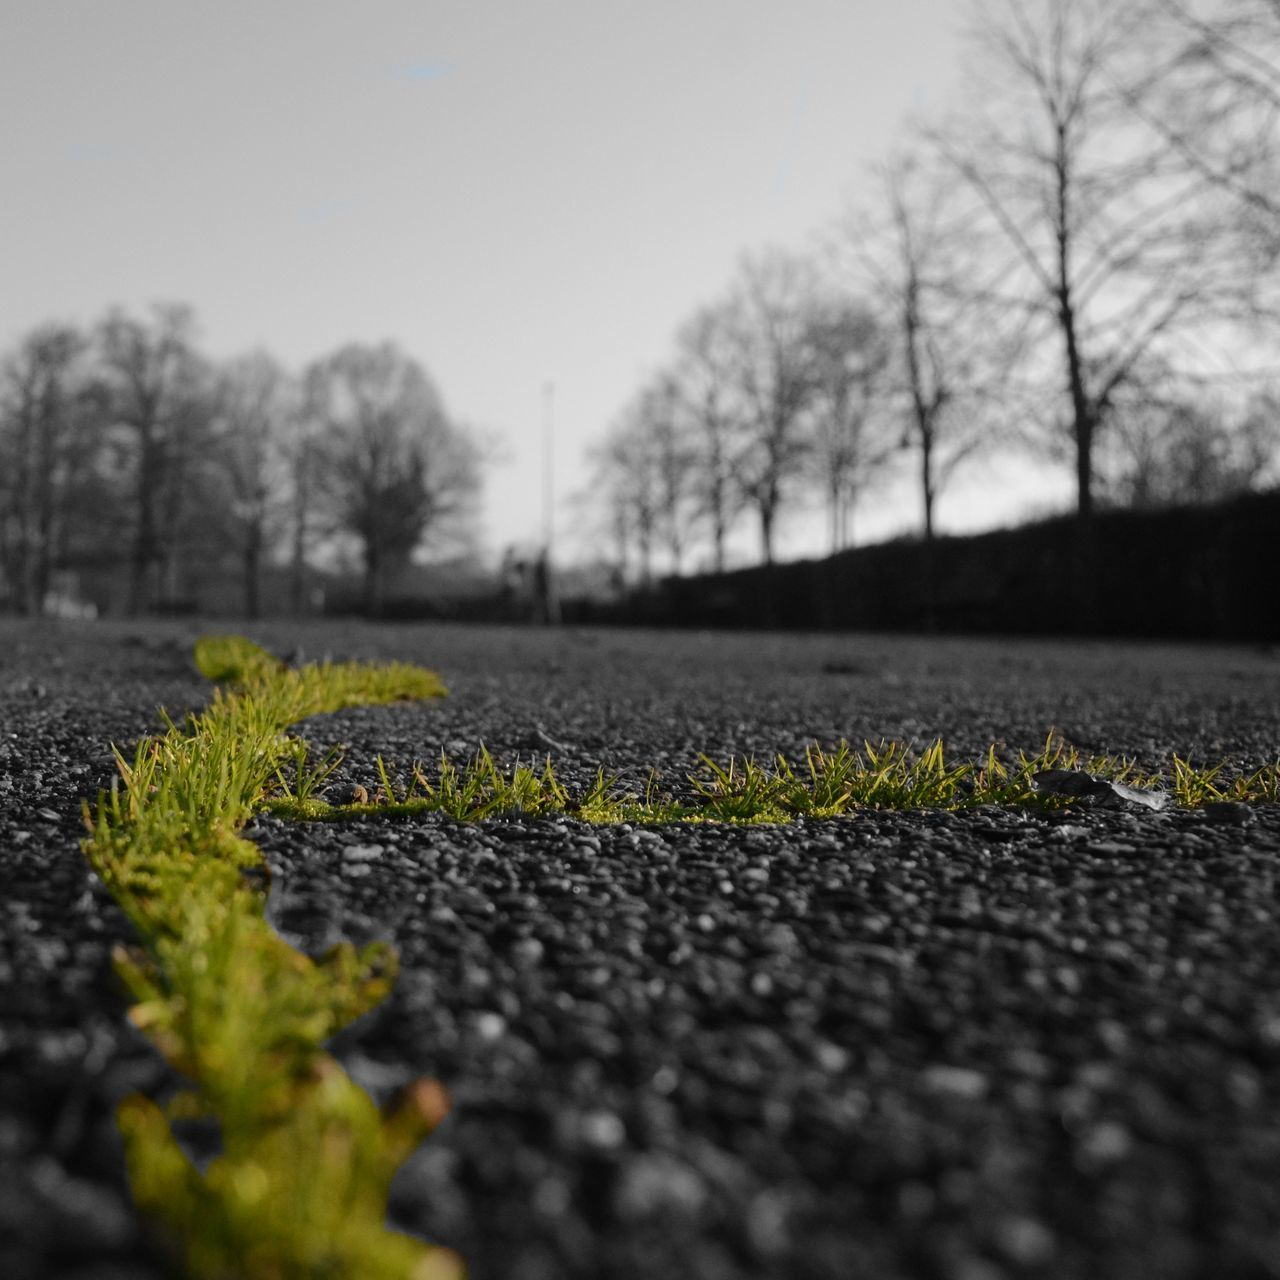 surface level, growth, nature, plant, day, bare tree, selective focus, tranquility, no people, outdoors, tree, beauty in nature, road, close-up, sky